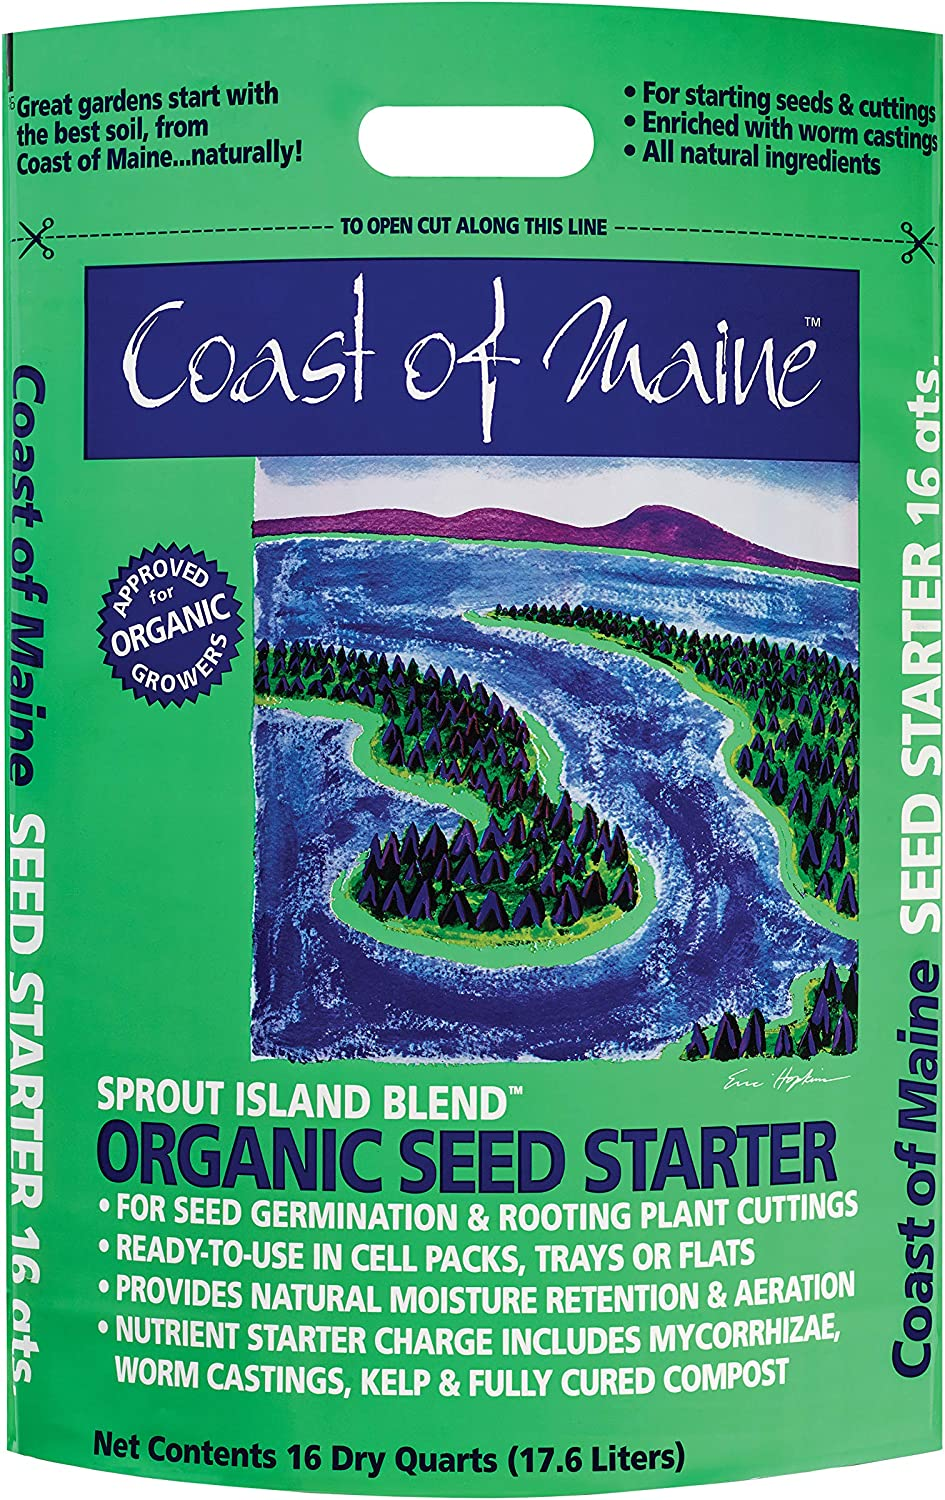 Coast of Maine - Organic Seed Starter - Sprout Island Blend